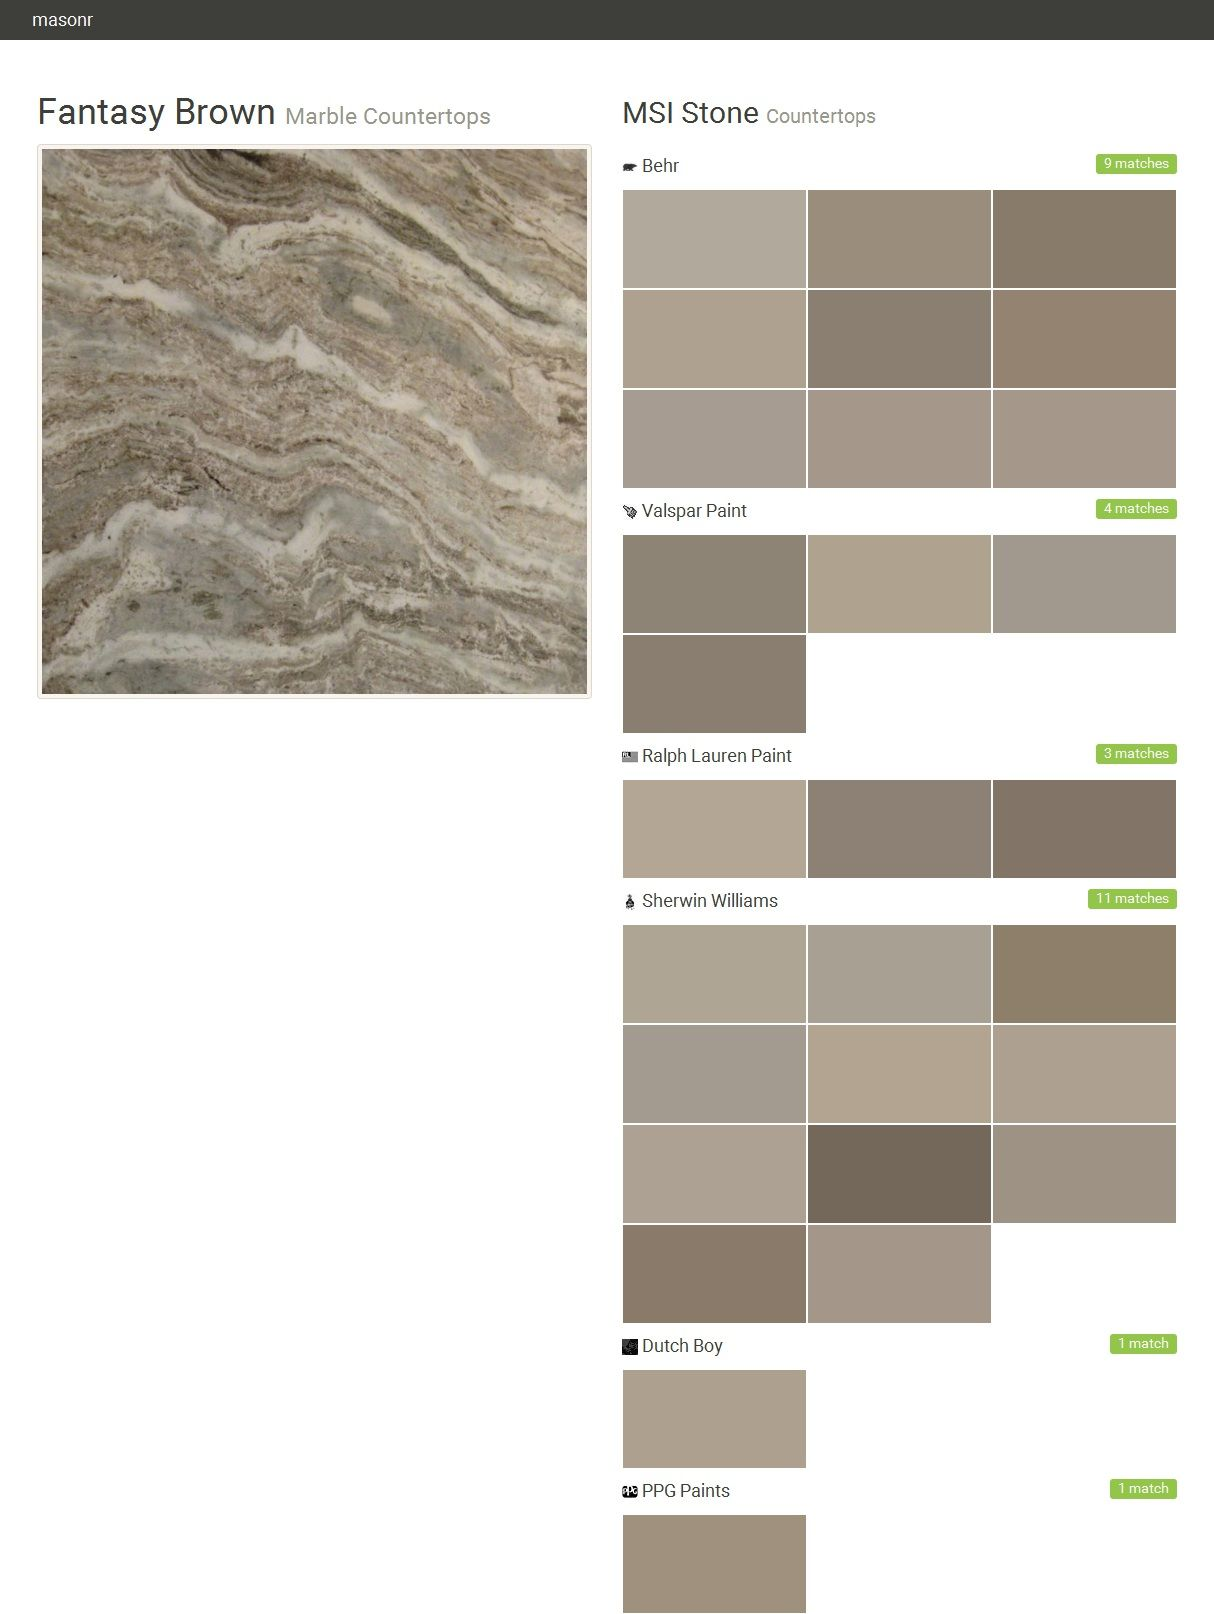 Fantasy brown marble countertops countertops msi stone for What colors match with grey